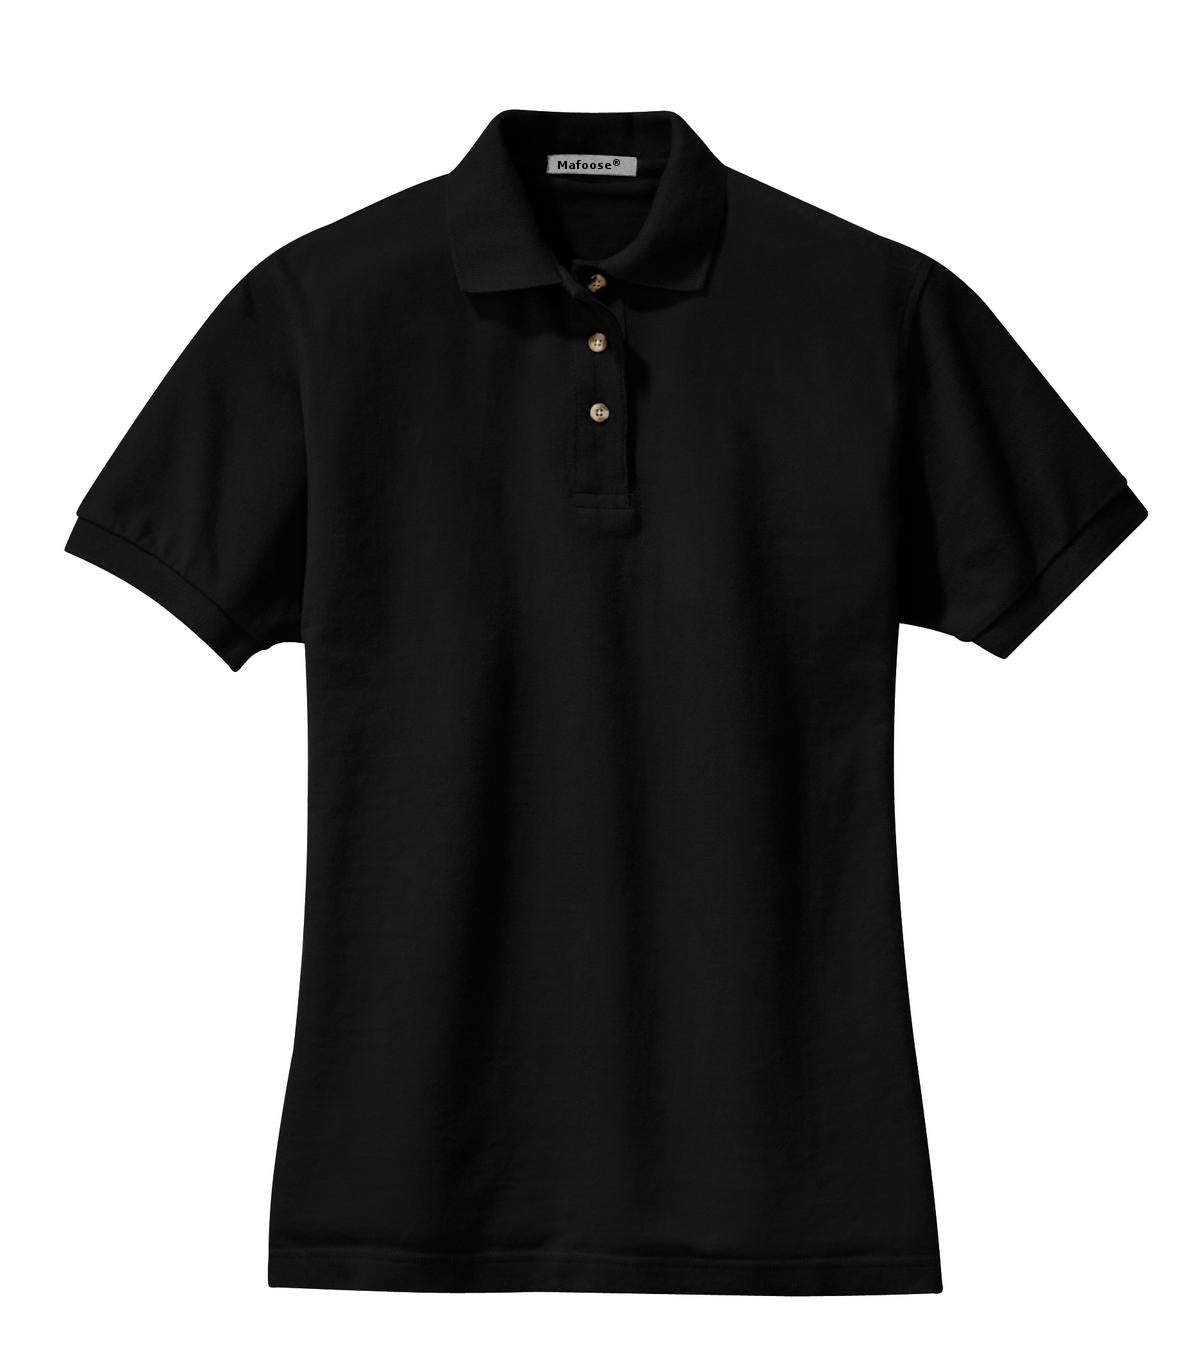 Mafoose Women's Heavyweight Cotton Pique Polo Shirt Black-Front